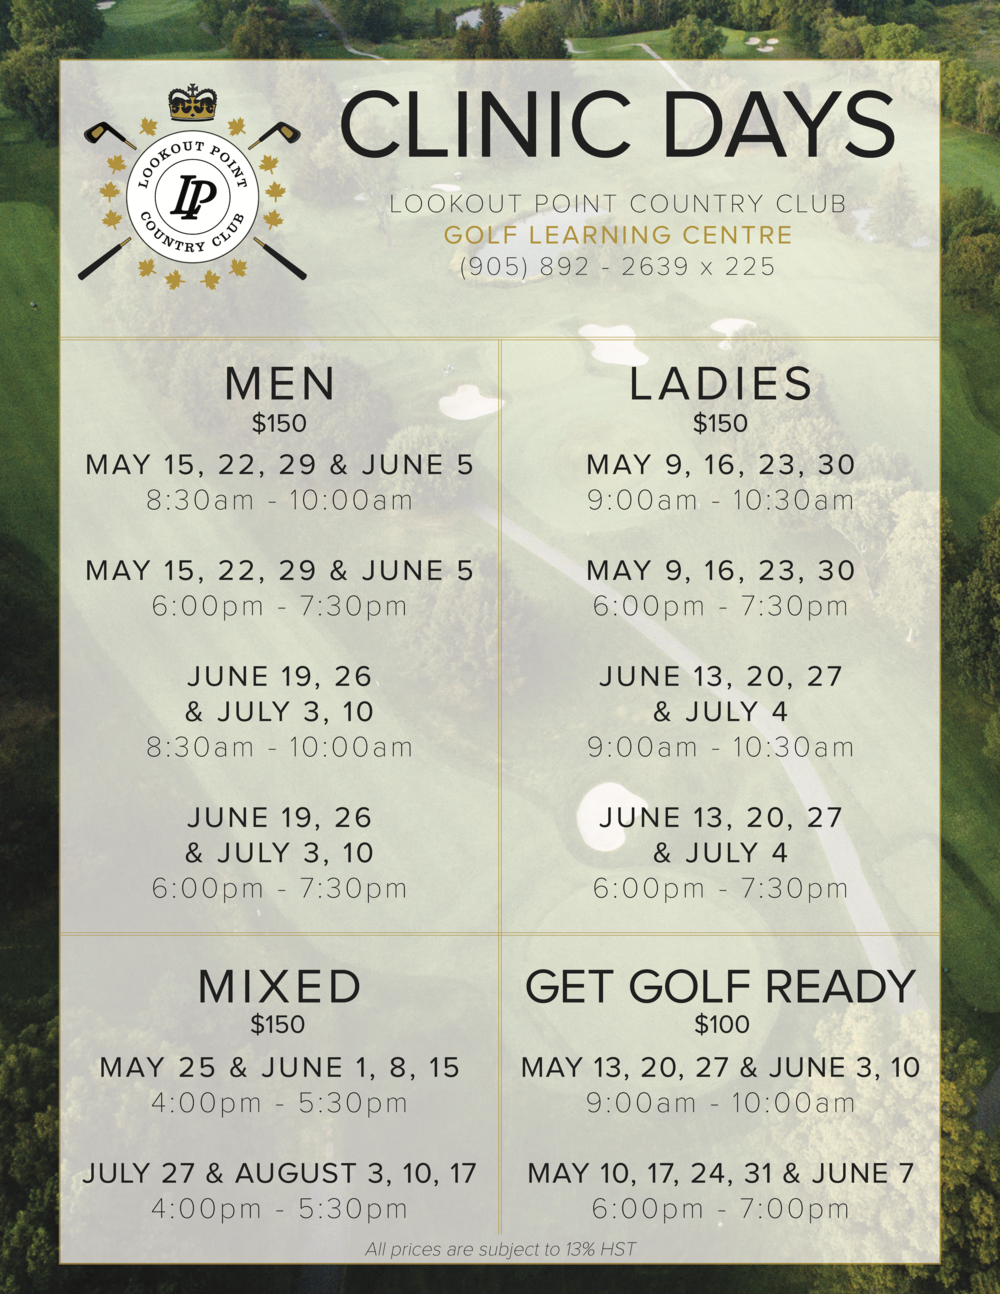 LPCC_UPCOMING_CLINICS_LEARNING_CENTRE_2018_05_02_8_11.png